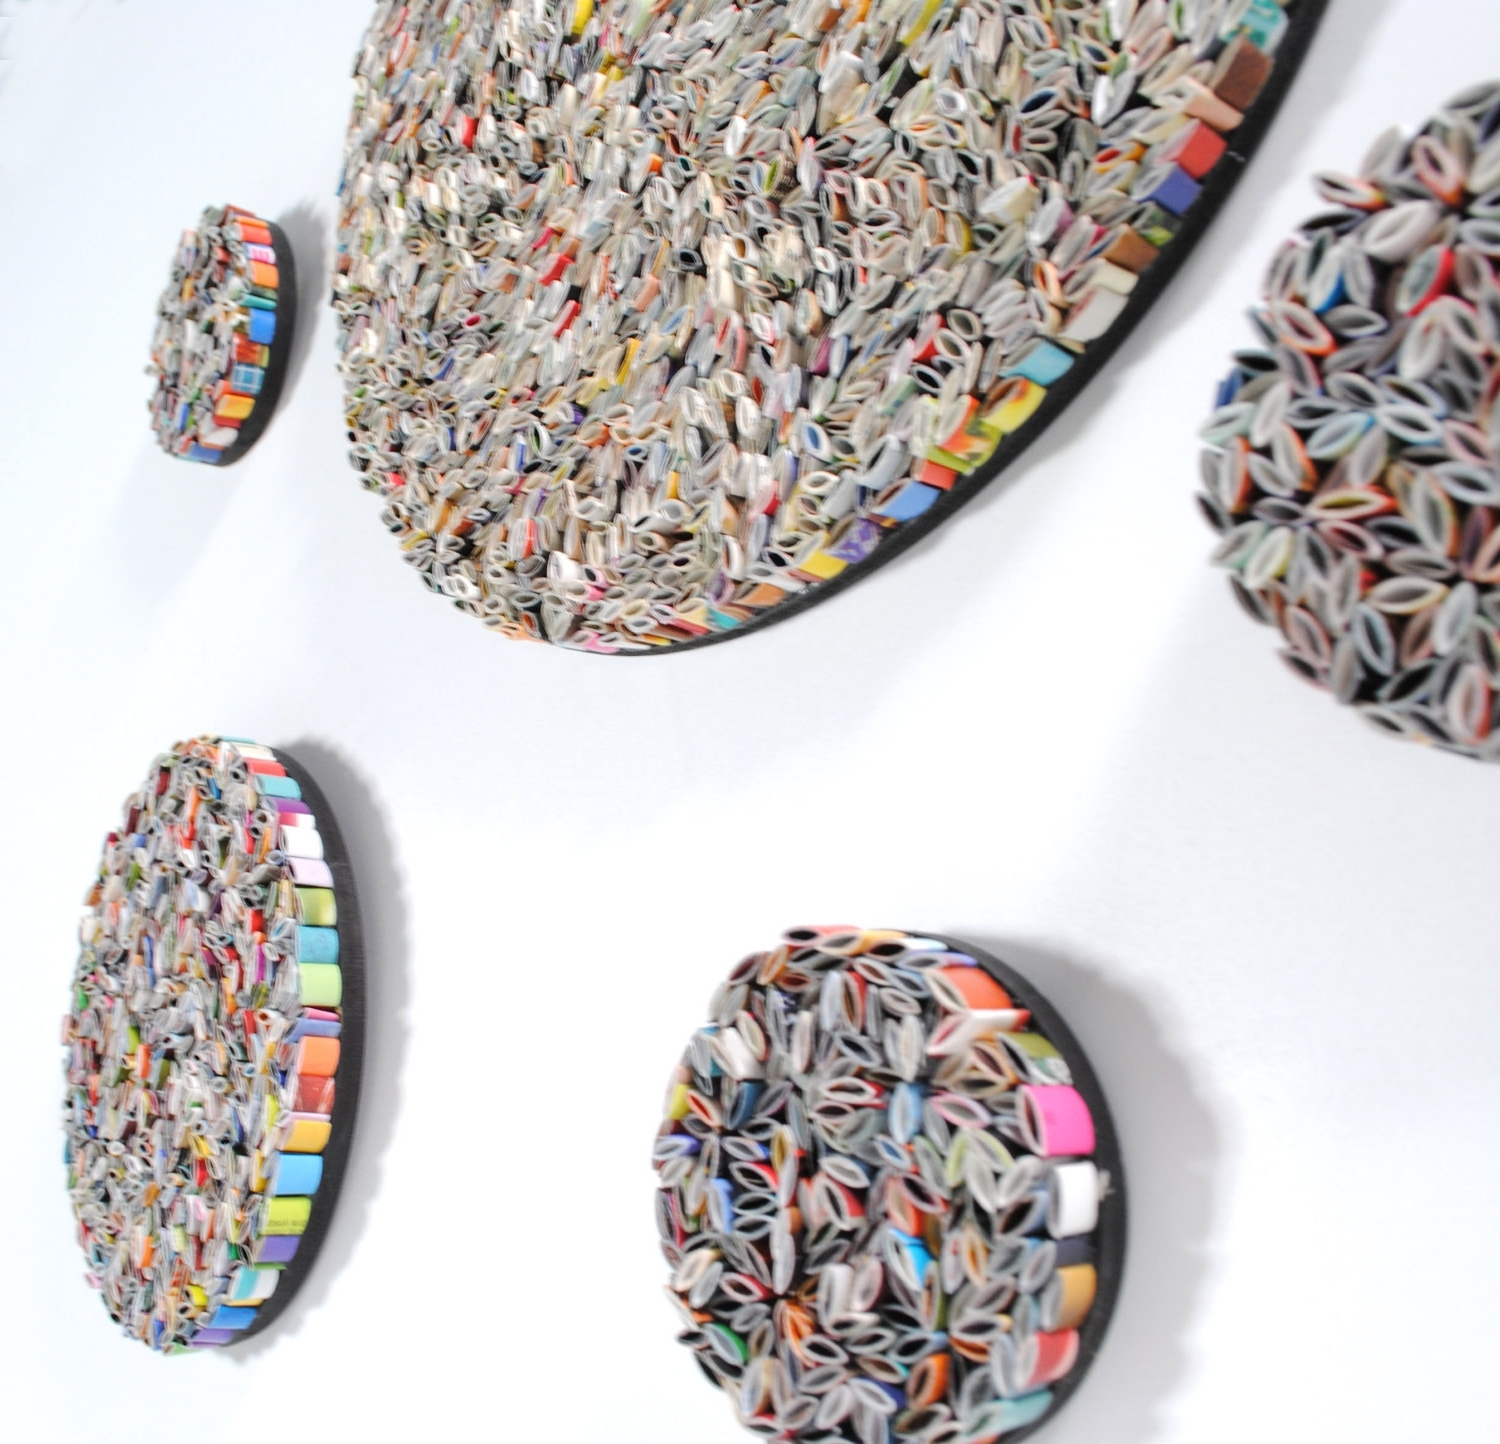 Favorite Set Of 5 Round Wall Art  Made From Recycled Magazines, Colorful Pertaining To Recycled Wall Art (View 4 of 15)